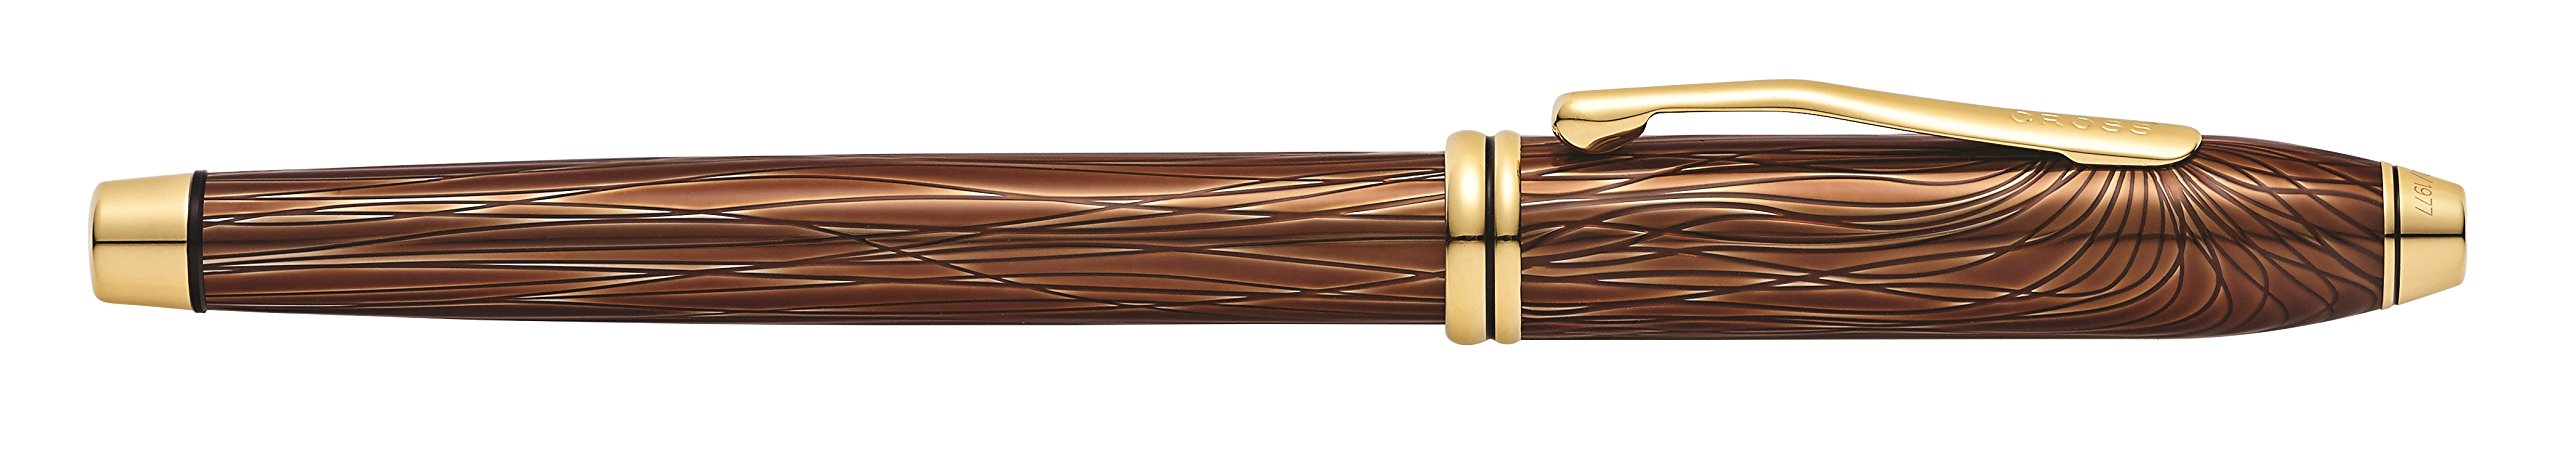 Cross Townsend Star Wars Limited Edition Chewbacca Selectip Rollerball Pen by Cross (Image #4)